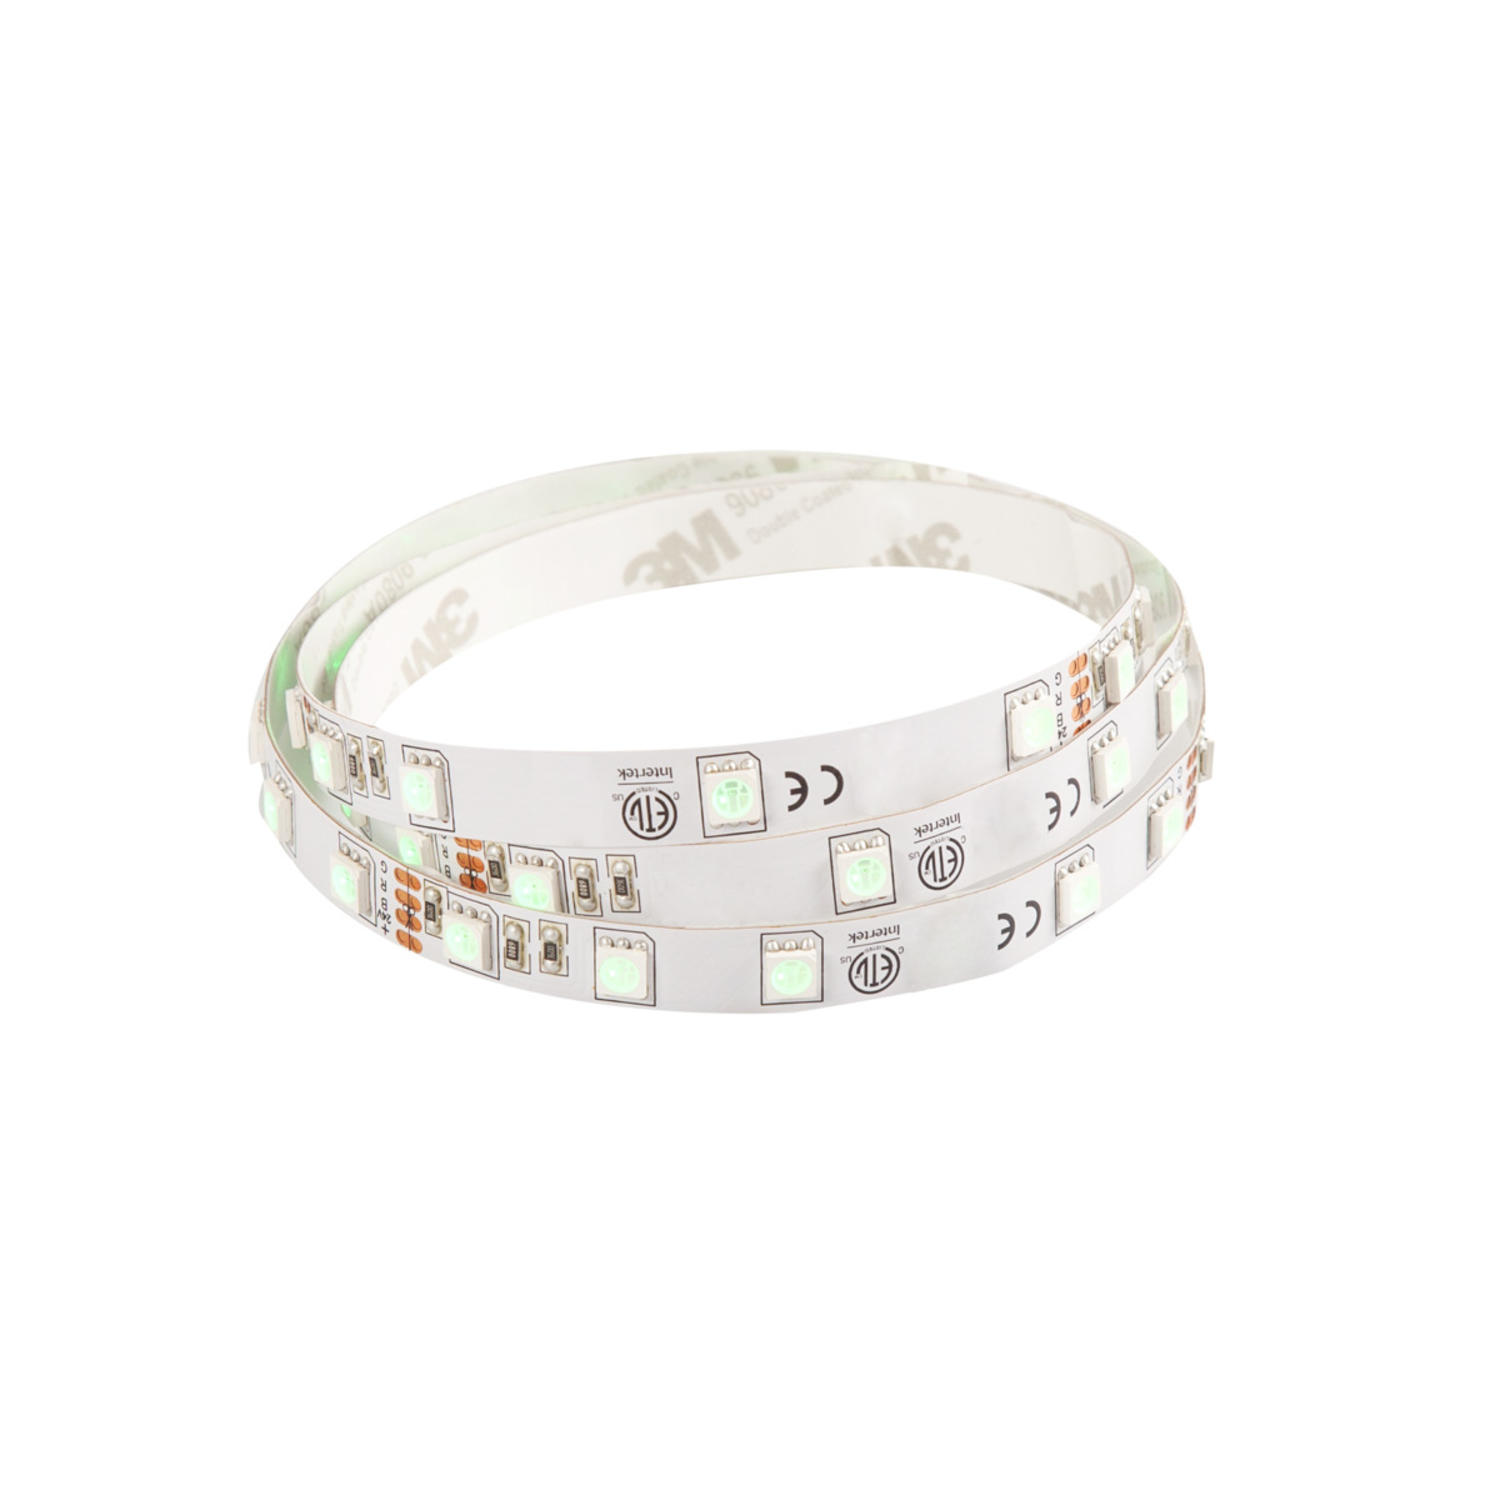 LED strip R IP20 12V RGB lpm